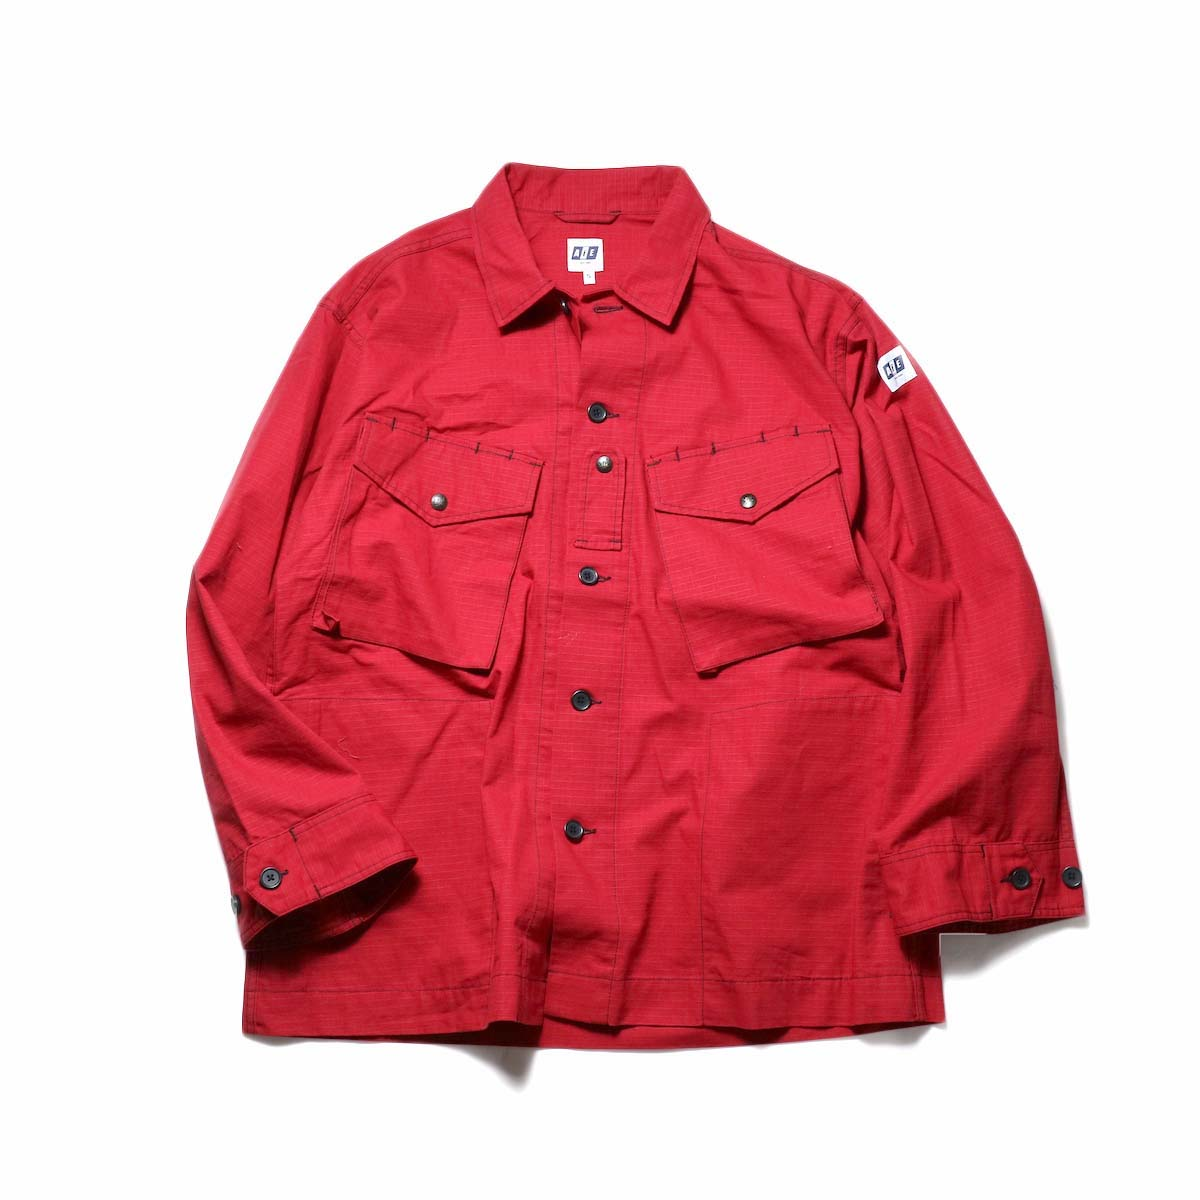 AiE / Prs Shirt -Cotton Ripstop (Red)